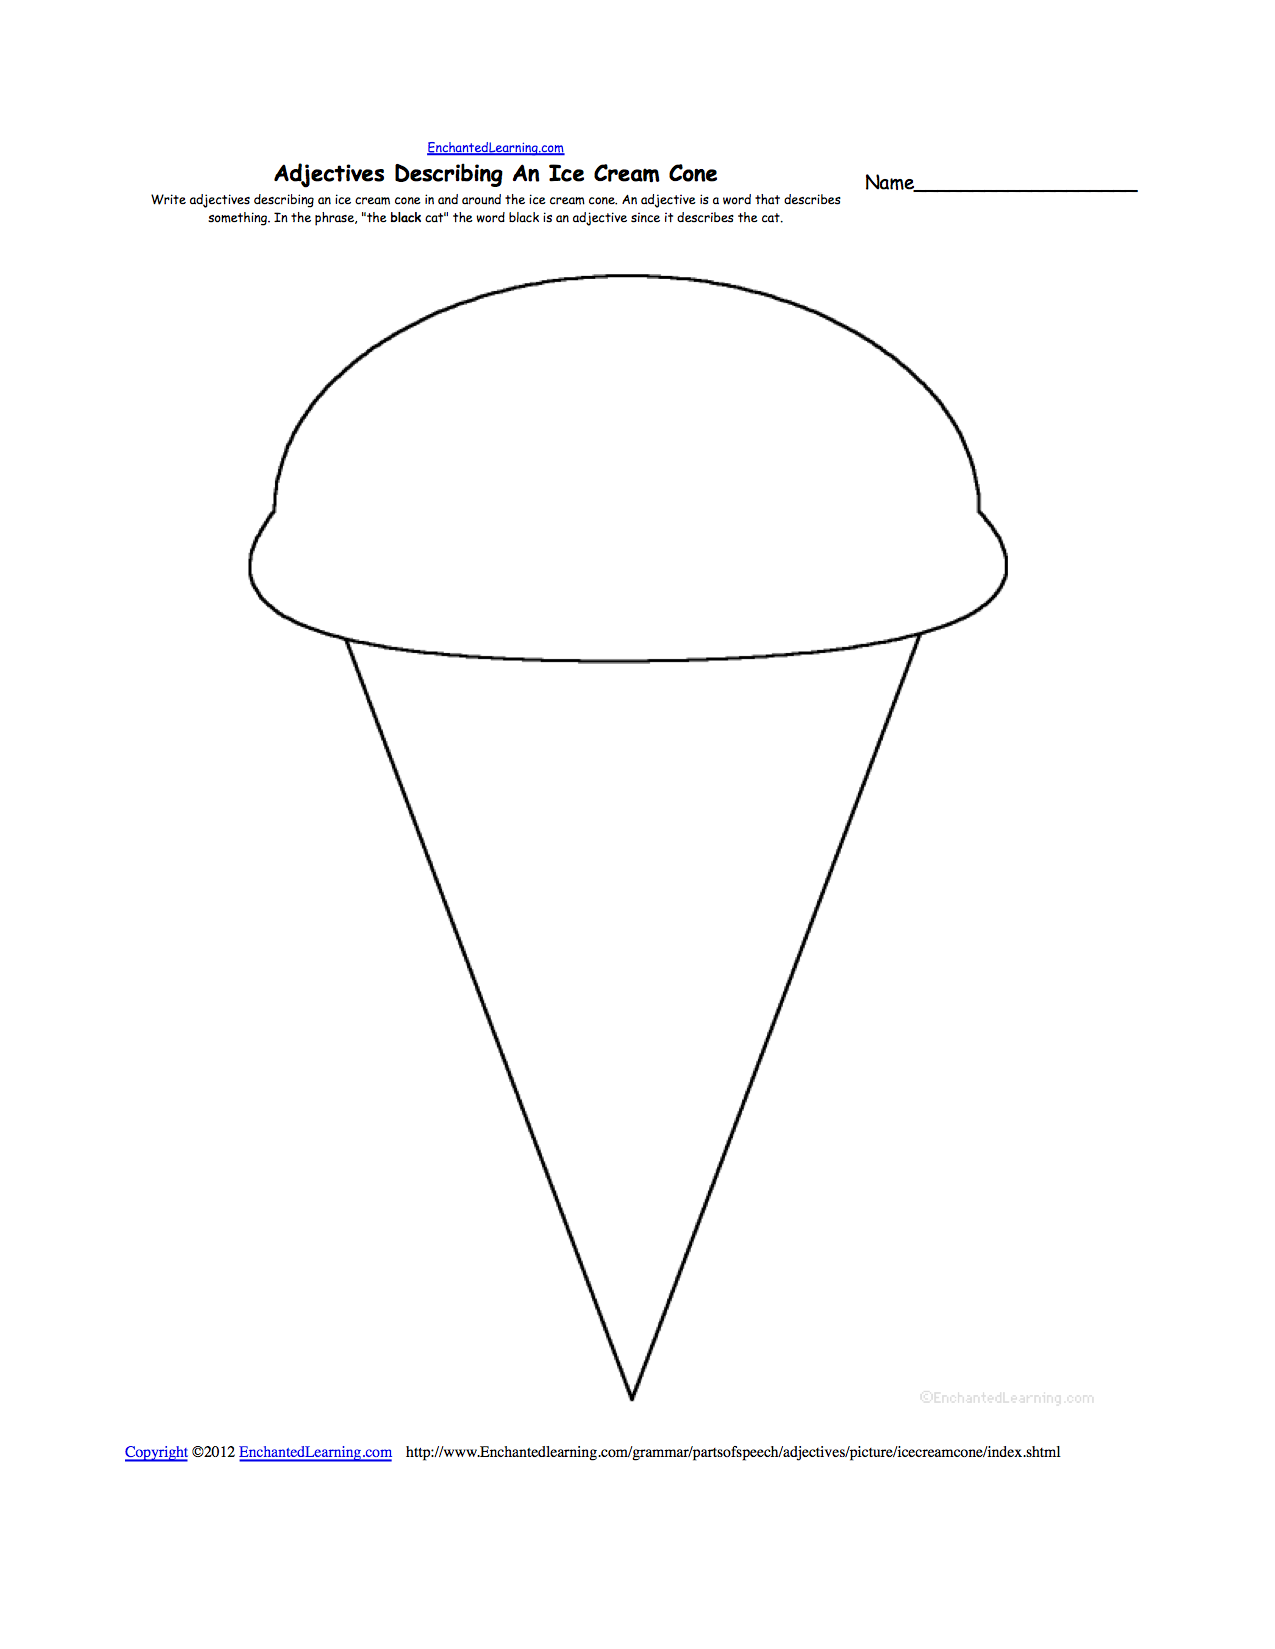 Coloring pictures of ice cream cones - Adjectives Describing An Ice Cream Cone